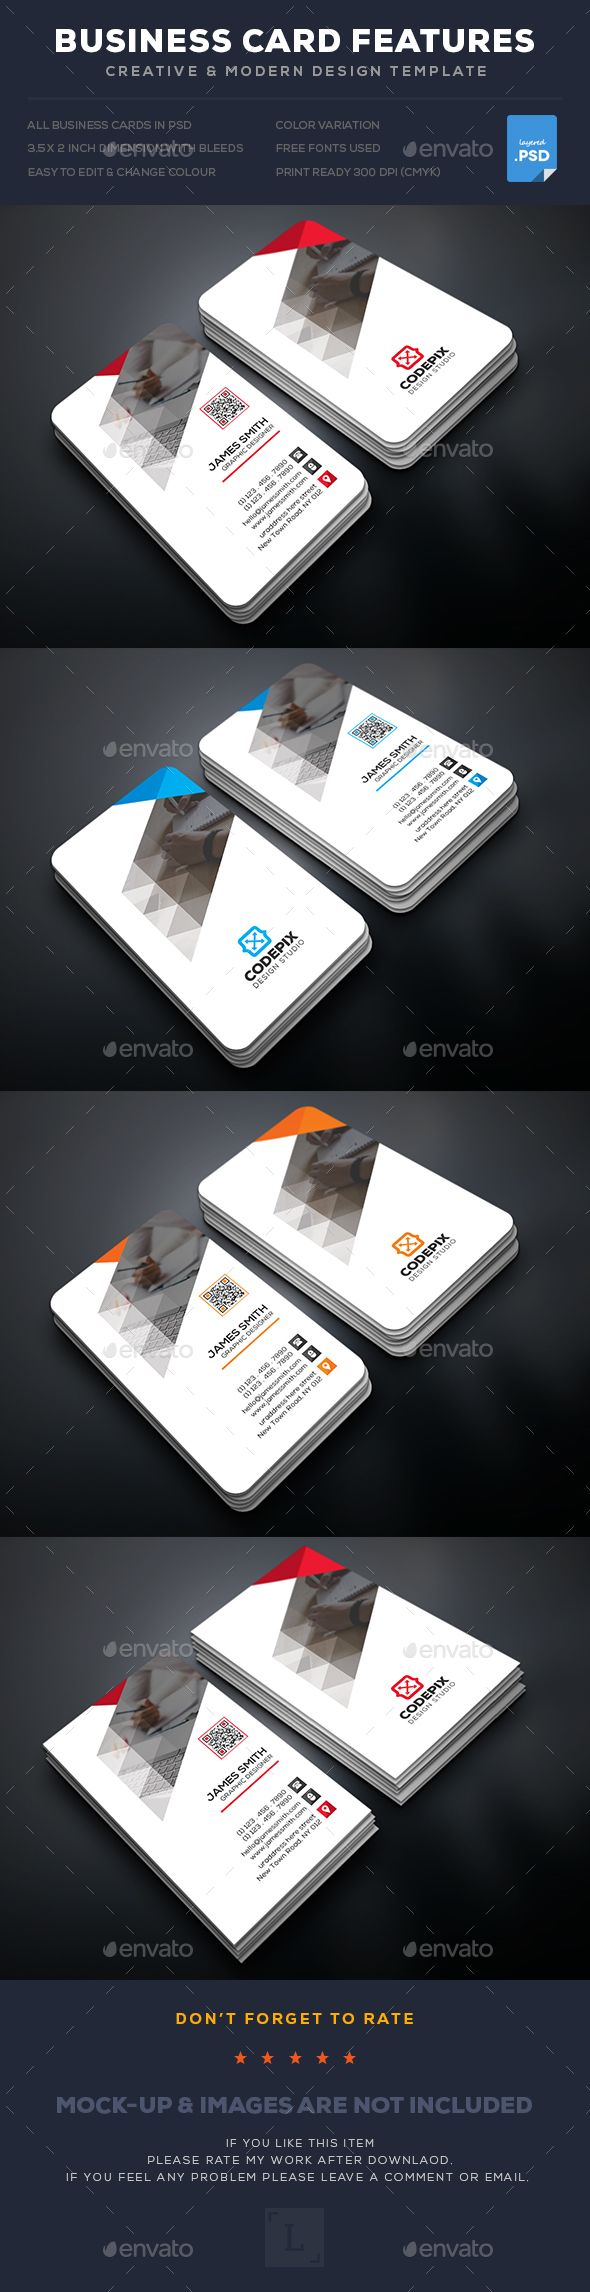 Business card business cards print templates and card printing business card template psd download here httpsgraphicriveritem business card17299237refksioks flashek Choice Image